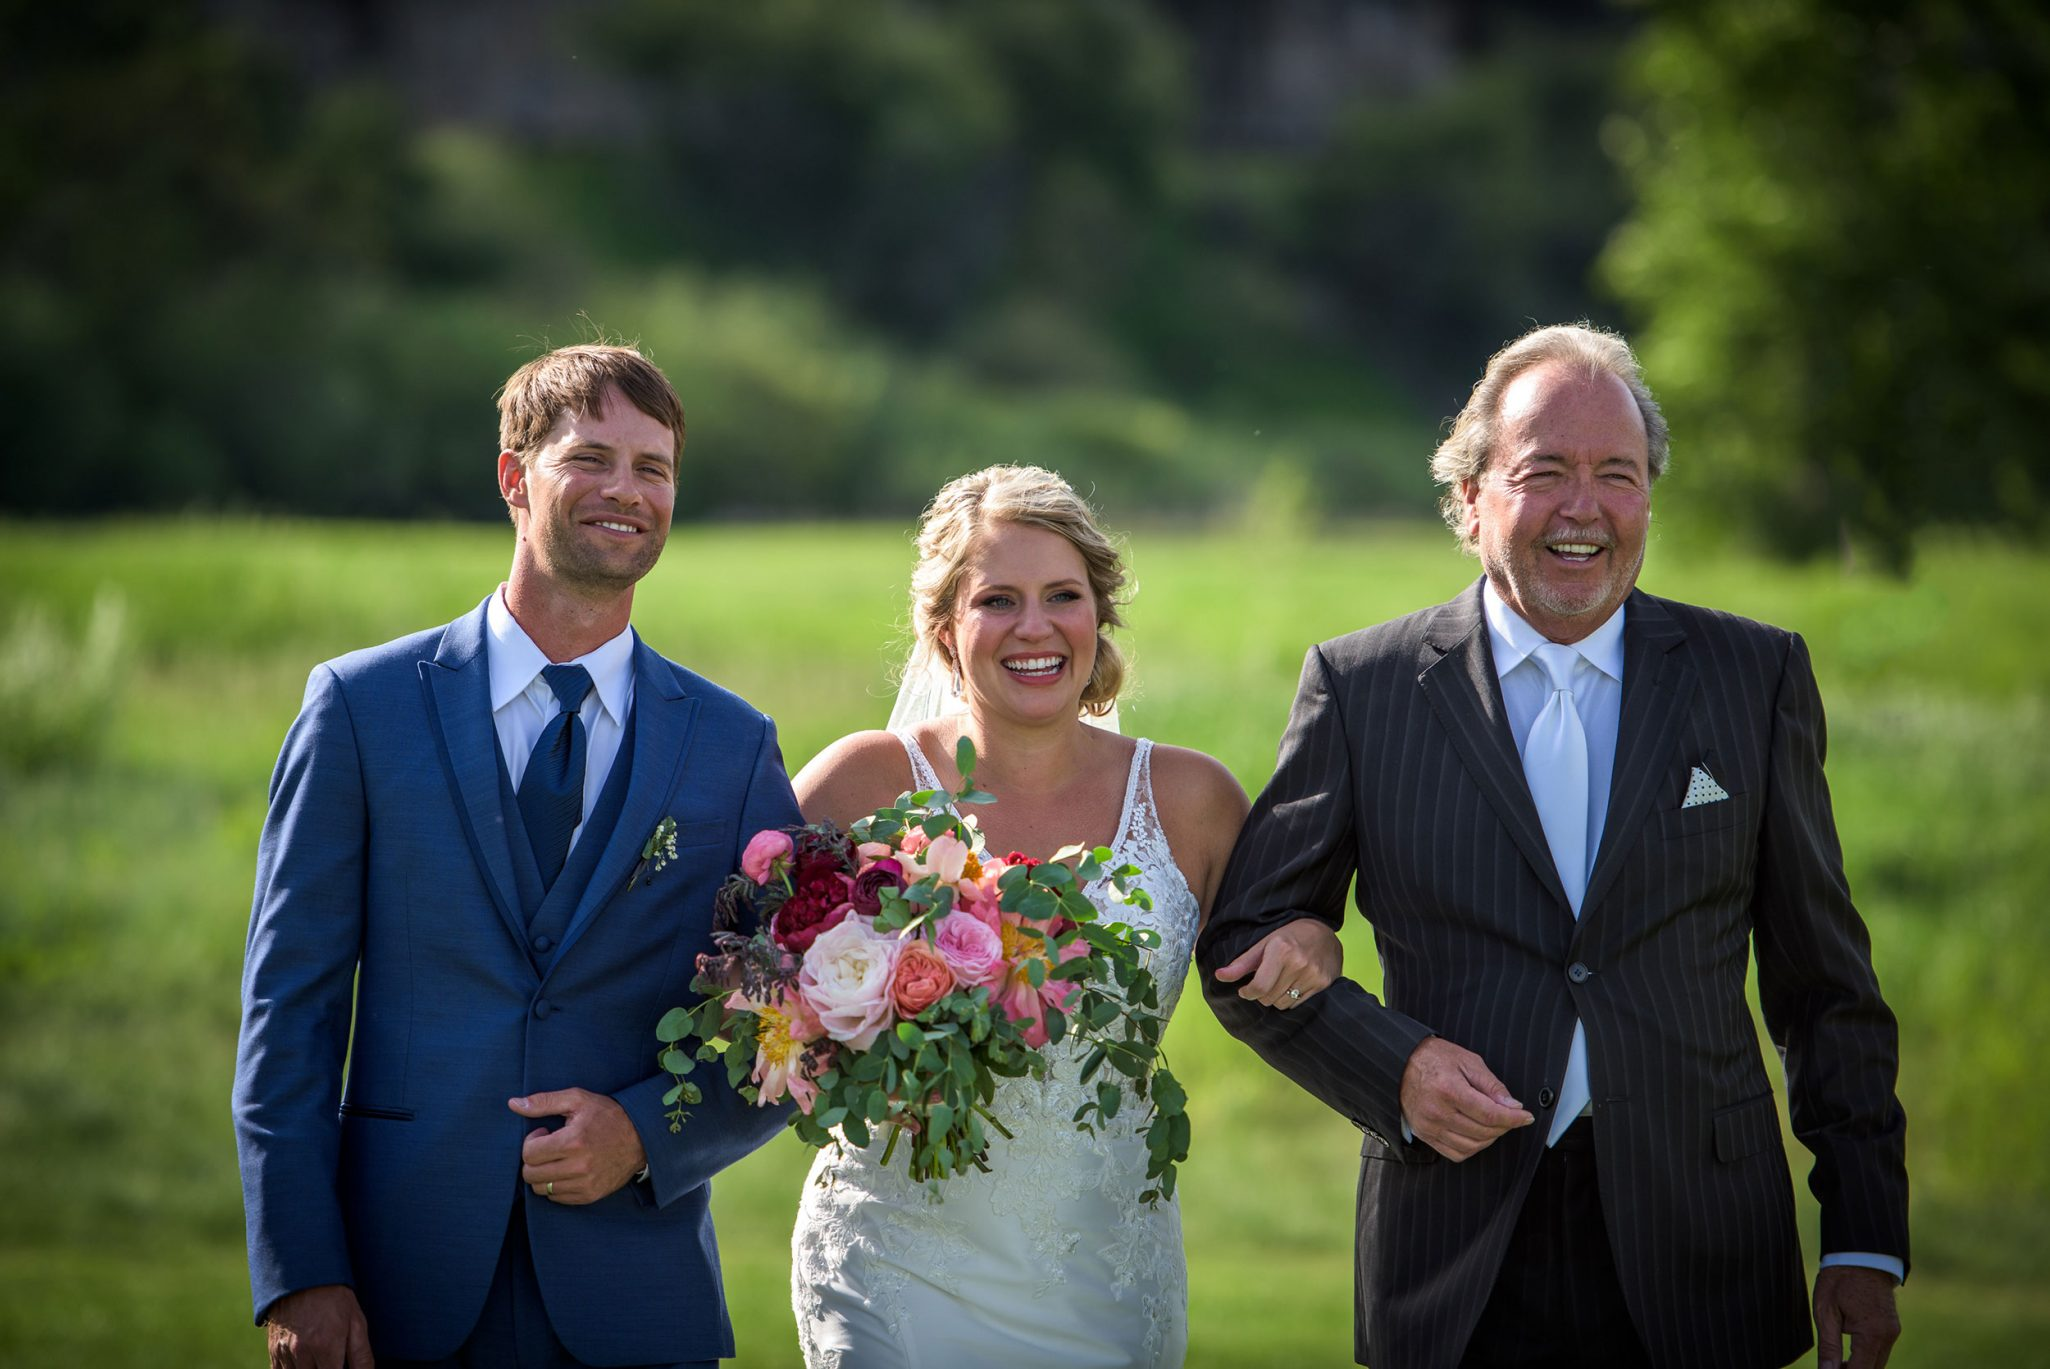 Walking down the aisle with dad & brother | Durango Weddings Magazine